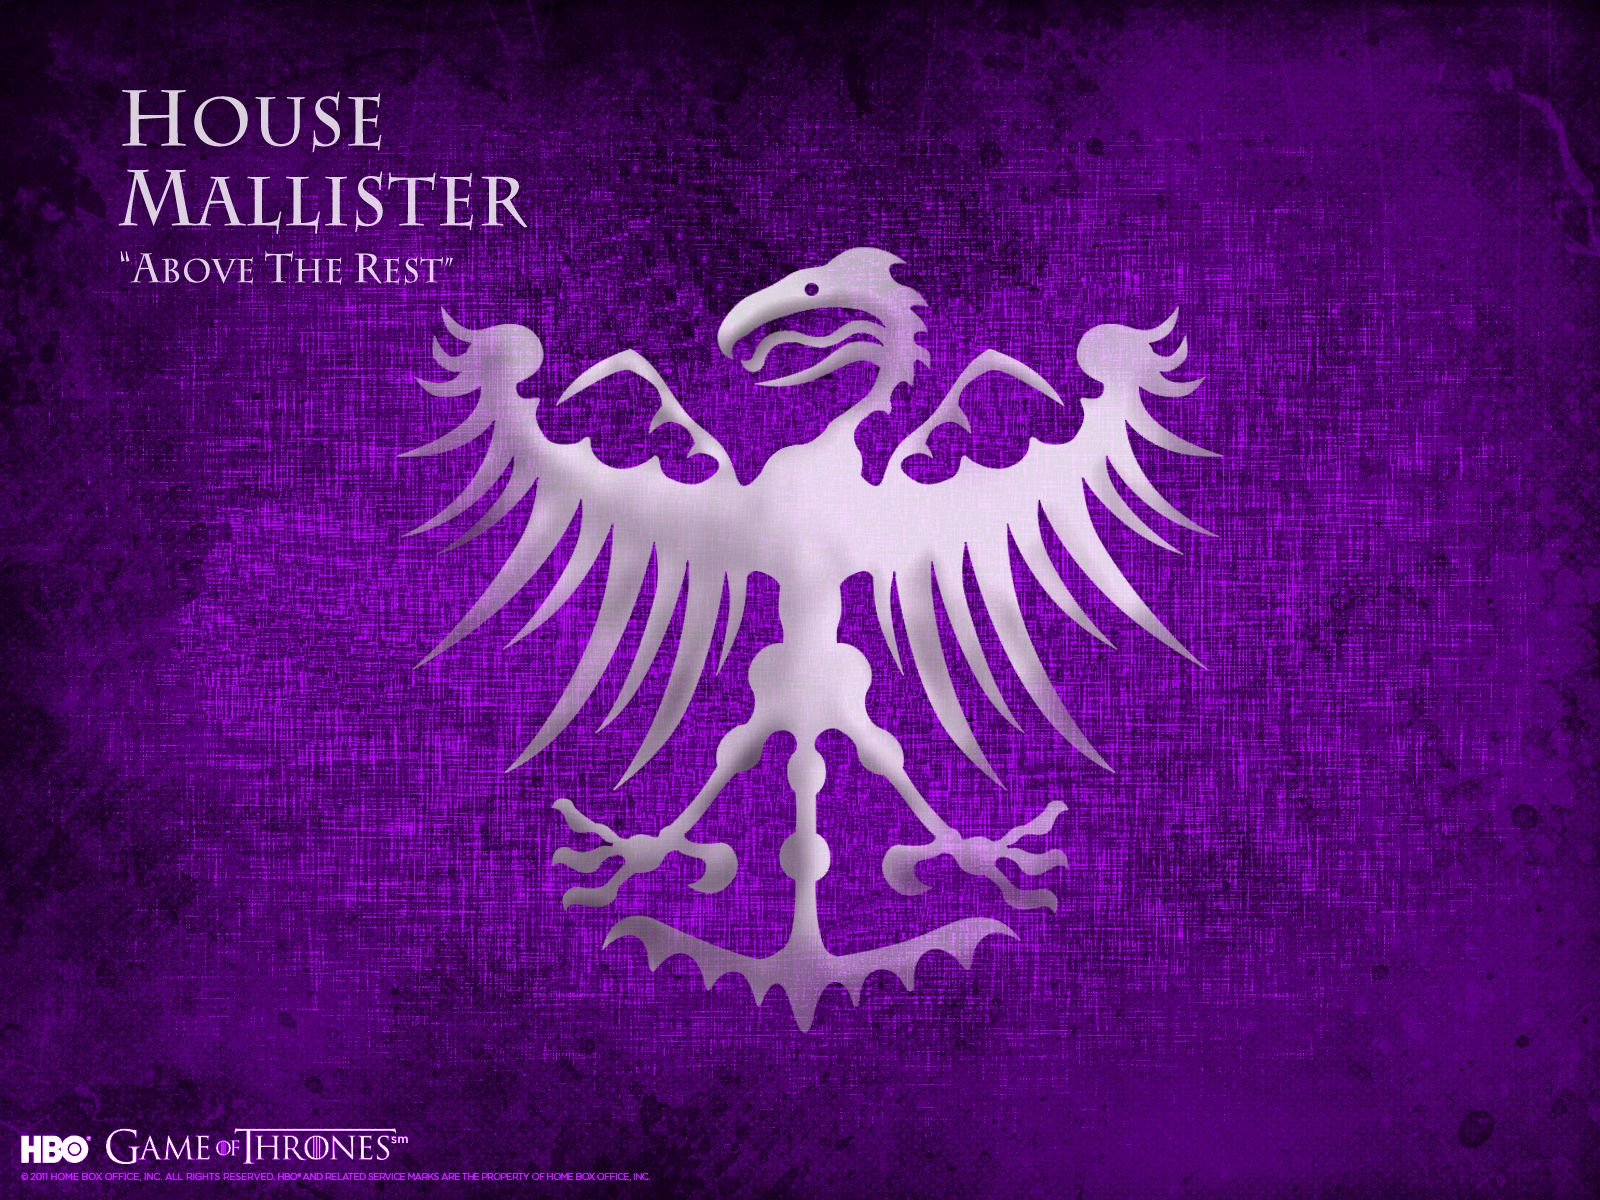 House Mallister The Game of Thrones Bolton game of thrones 1600x1200